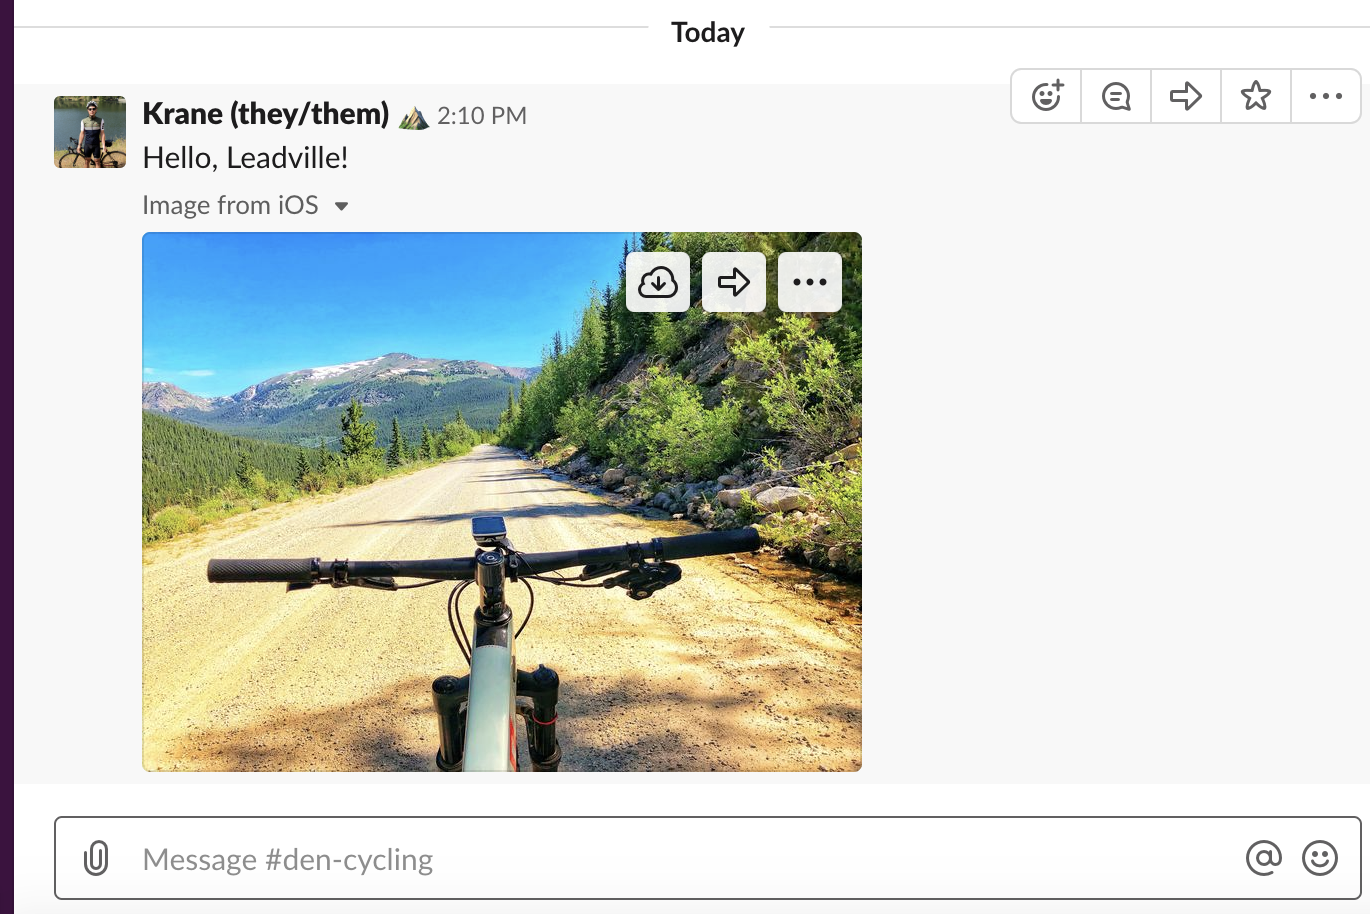 A picture of a bike in the mountains